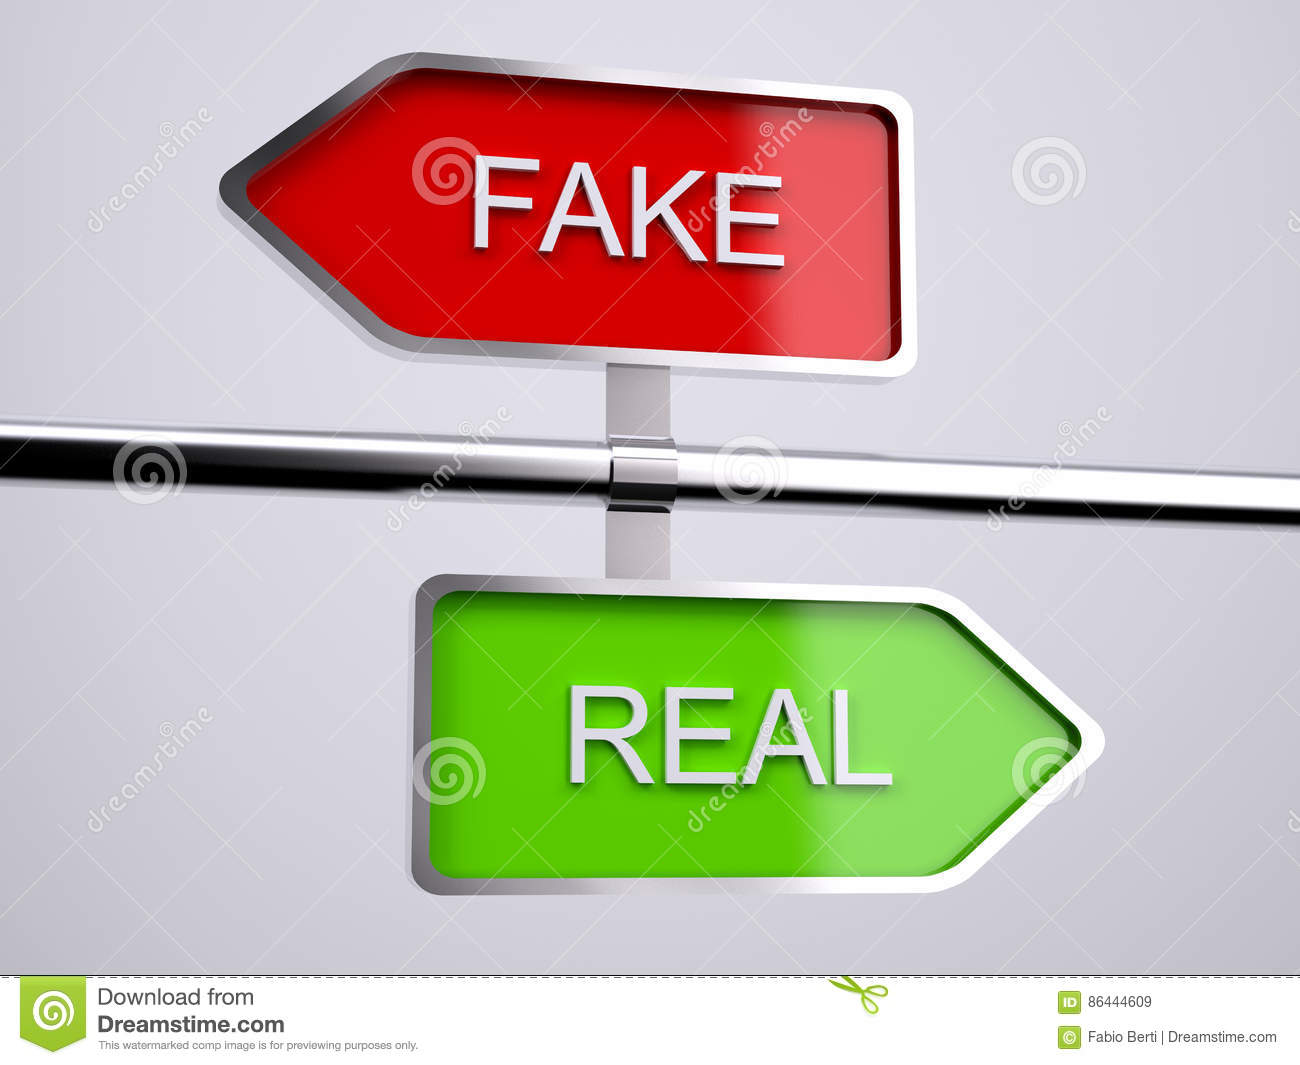 3f95d6b3e8f Fake VS Real Signs stock illustration. Illustration of authenticity ...